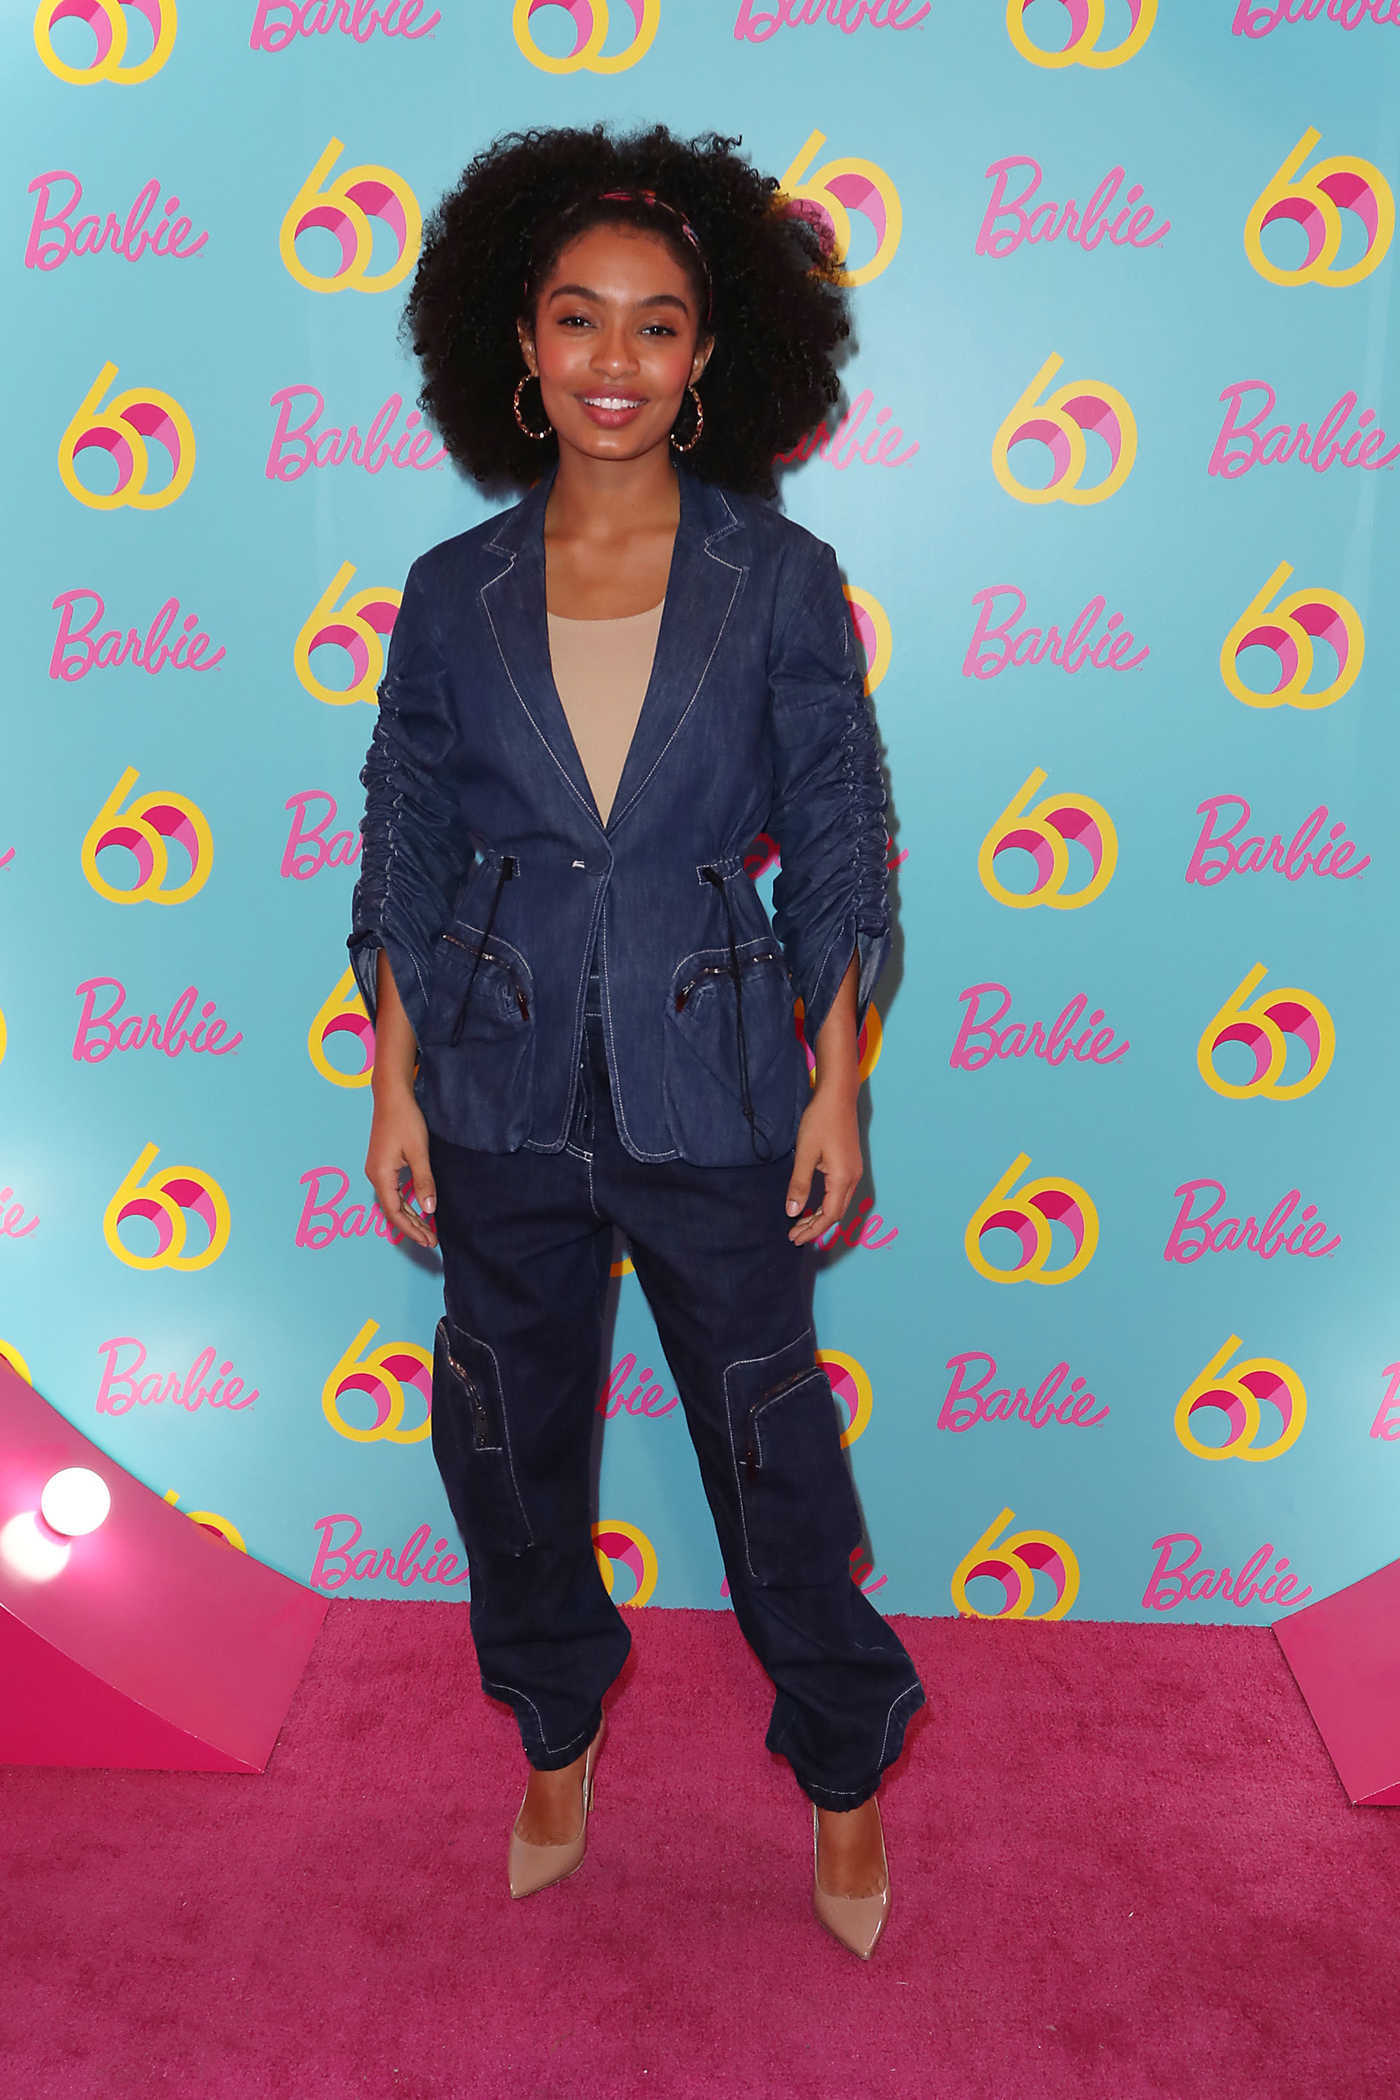 Yara Shahidi Attends Barbie's 60th Anniversary in New York 03/08/2019